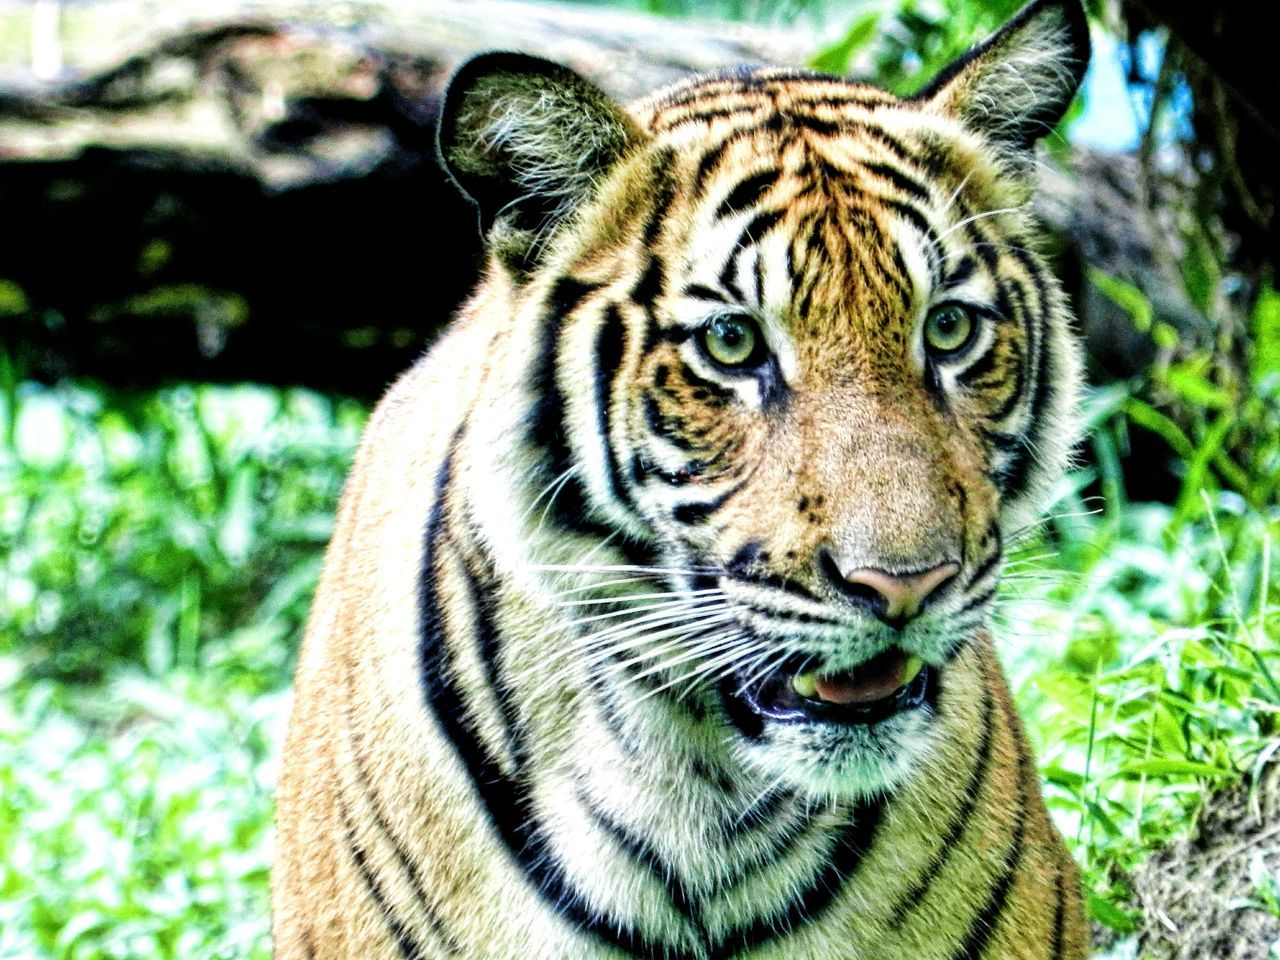 Throwback to my visit to The Zoo Nikon D5200 Walking Around Zoo Photo Shooting From A Distance Malayantiger Awesome_nature_shots Animal_collection Animal Photography Tiger Tigers Tiger Face Predator Predators King Of The Jungle EyeEm Malaysia